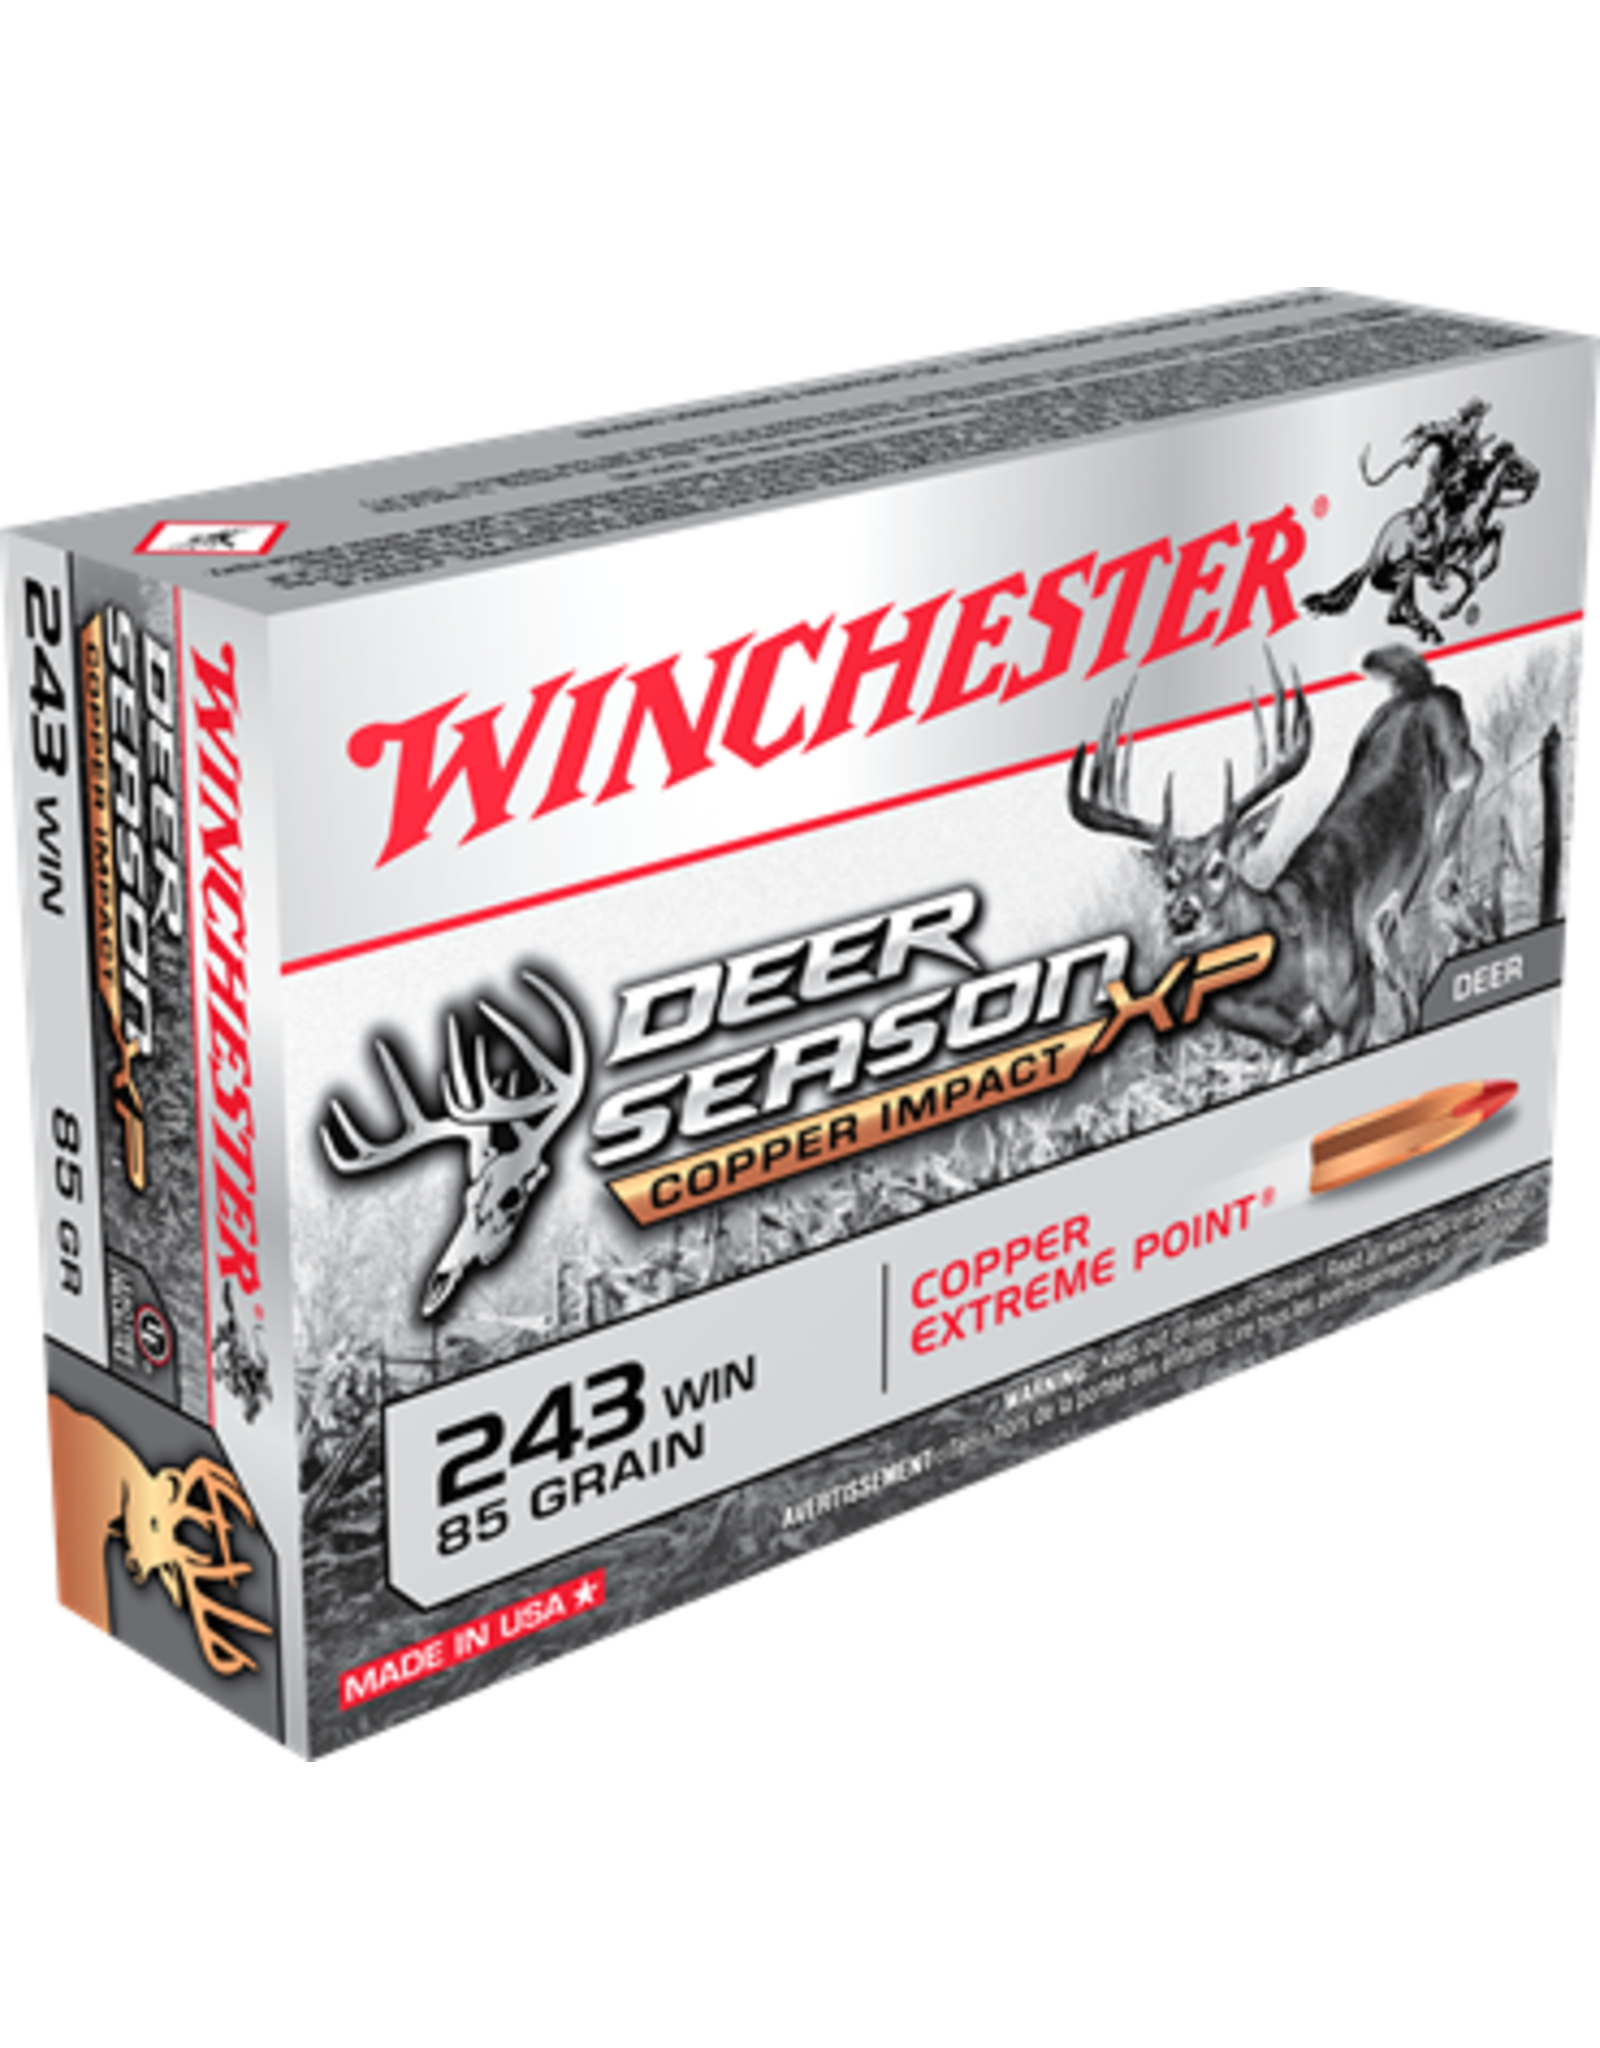 Winchester 243 WIN 85GR DS/XP Copper Impact